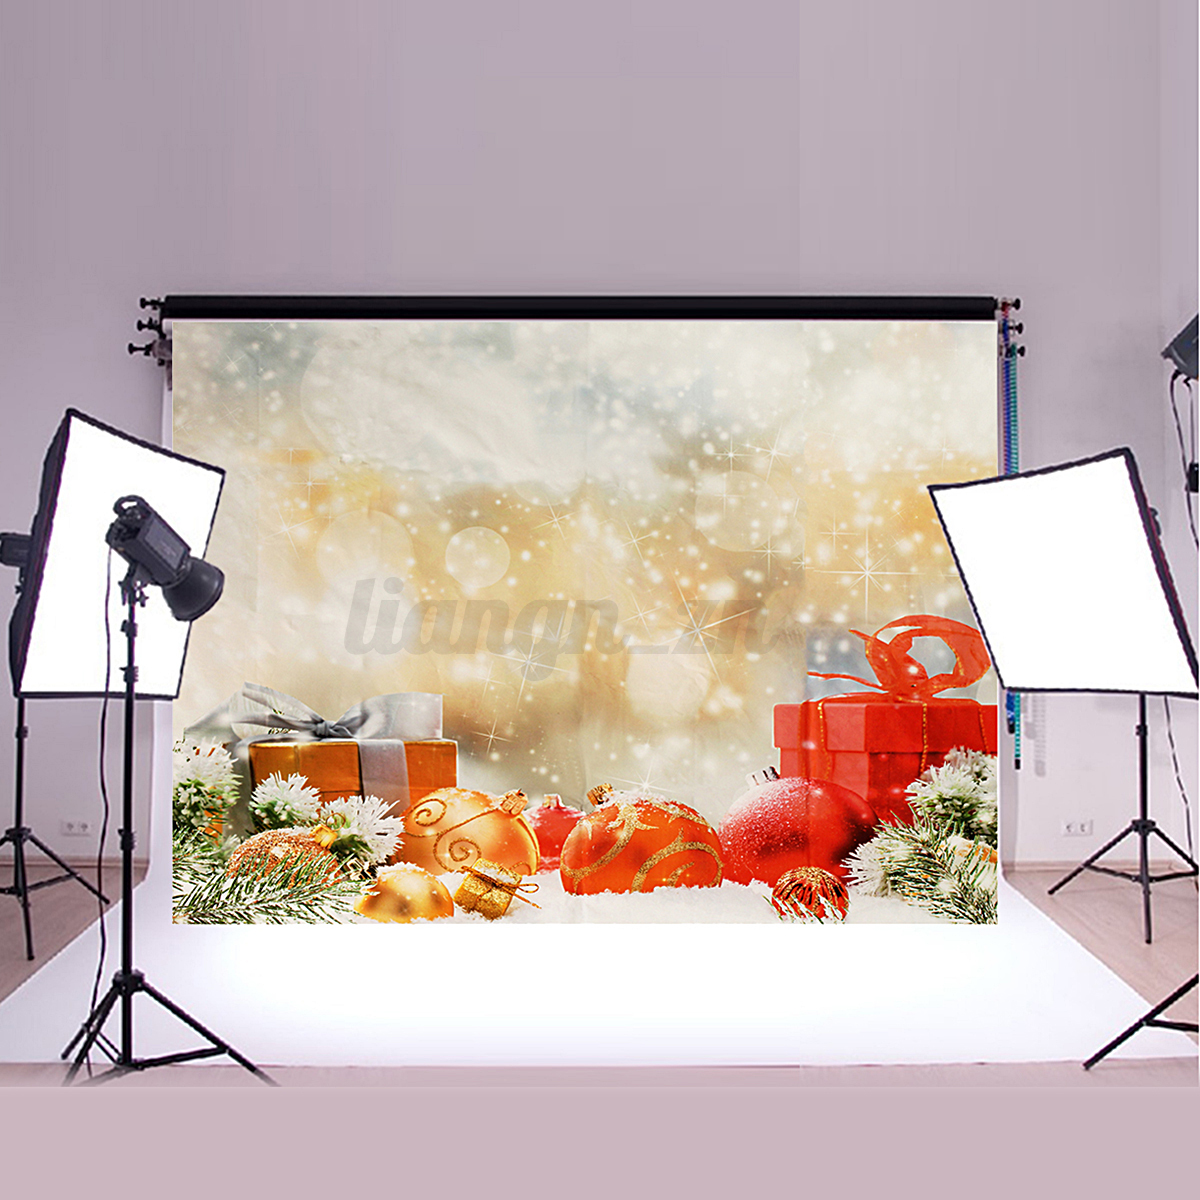 toile de fond vinyl backdrop photographie photo studio no l f te murale d cor ebay. Black Bedroom Furniture Sets. Home Design Ideas